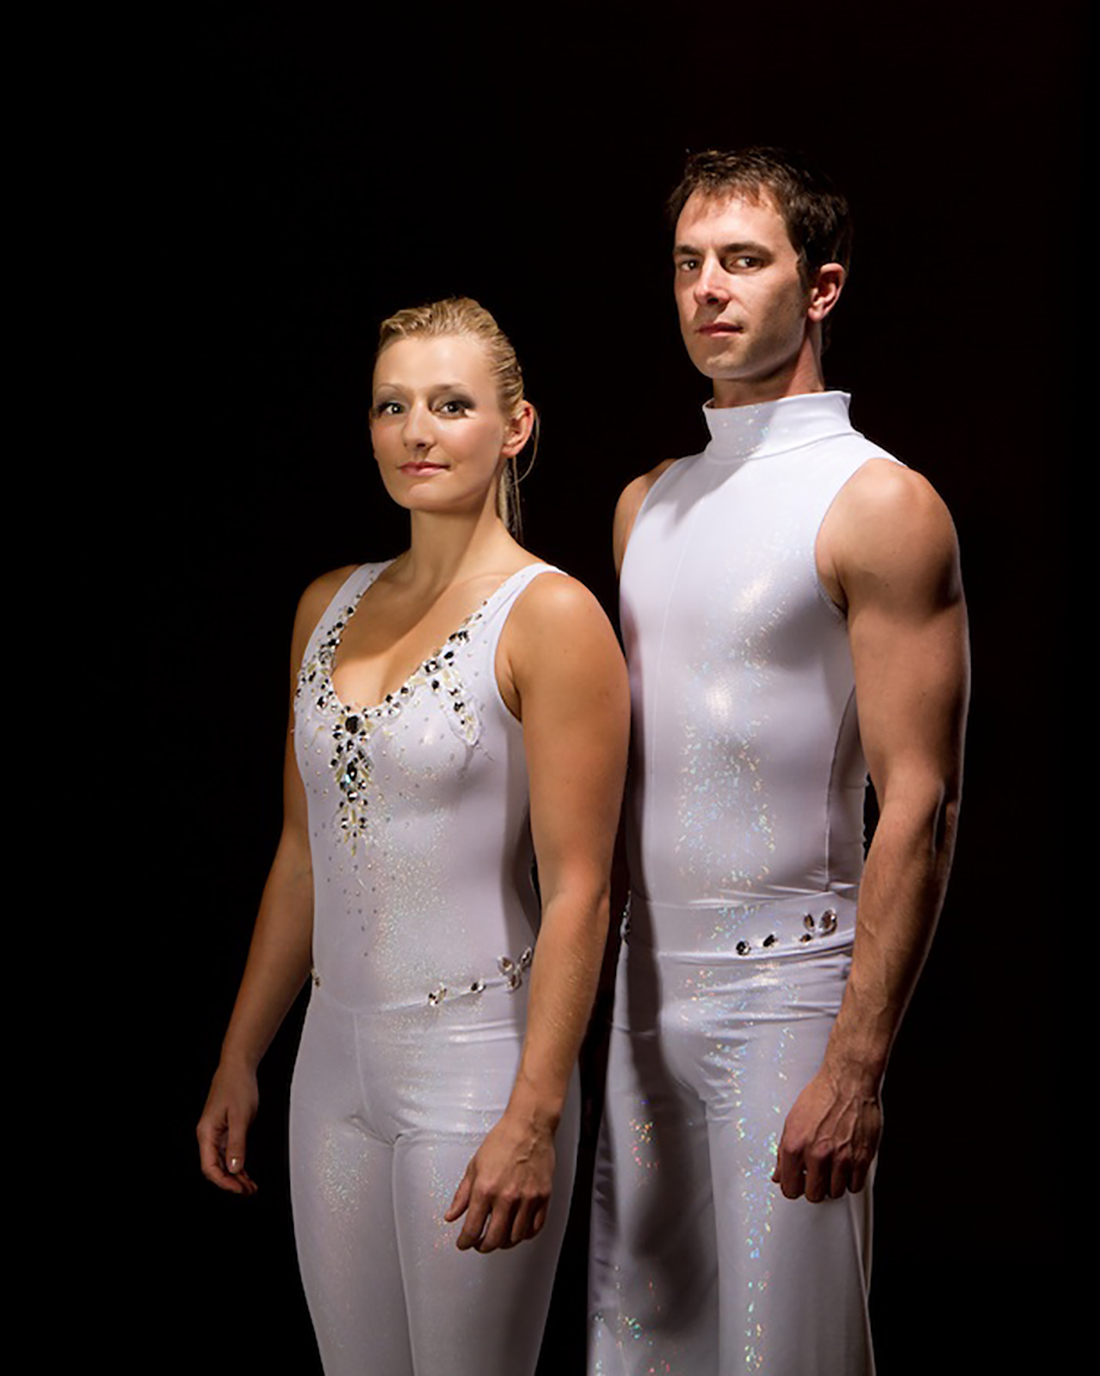 White catsuits with Swarovski crystals